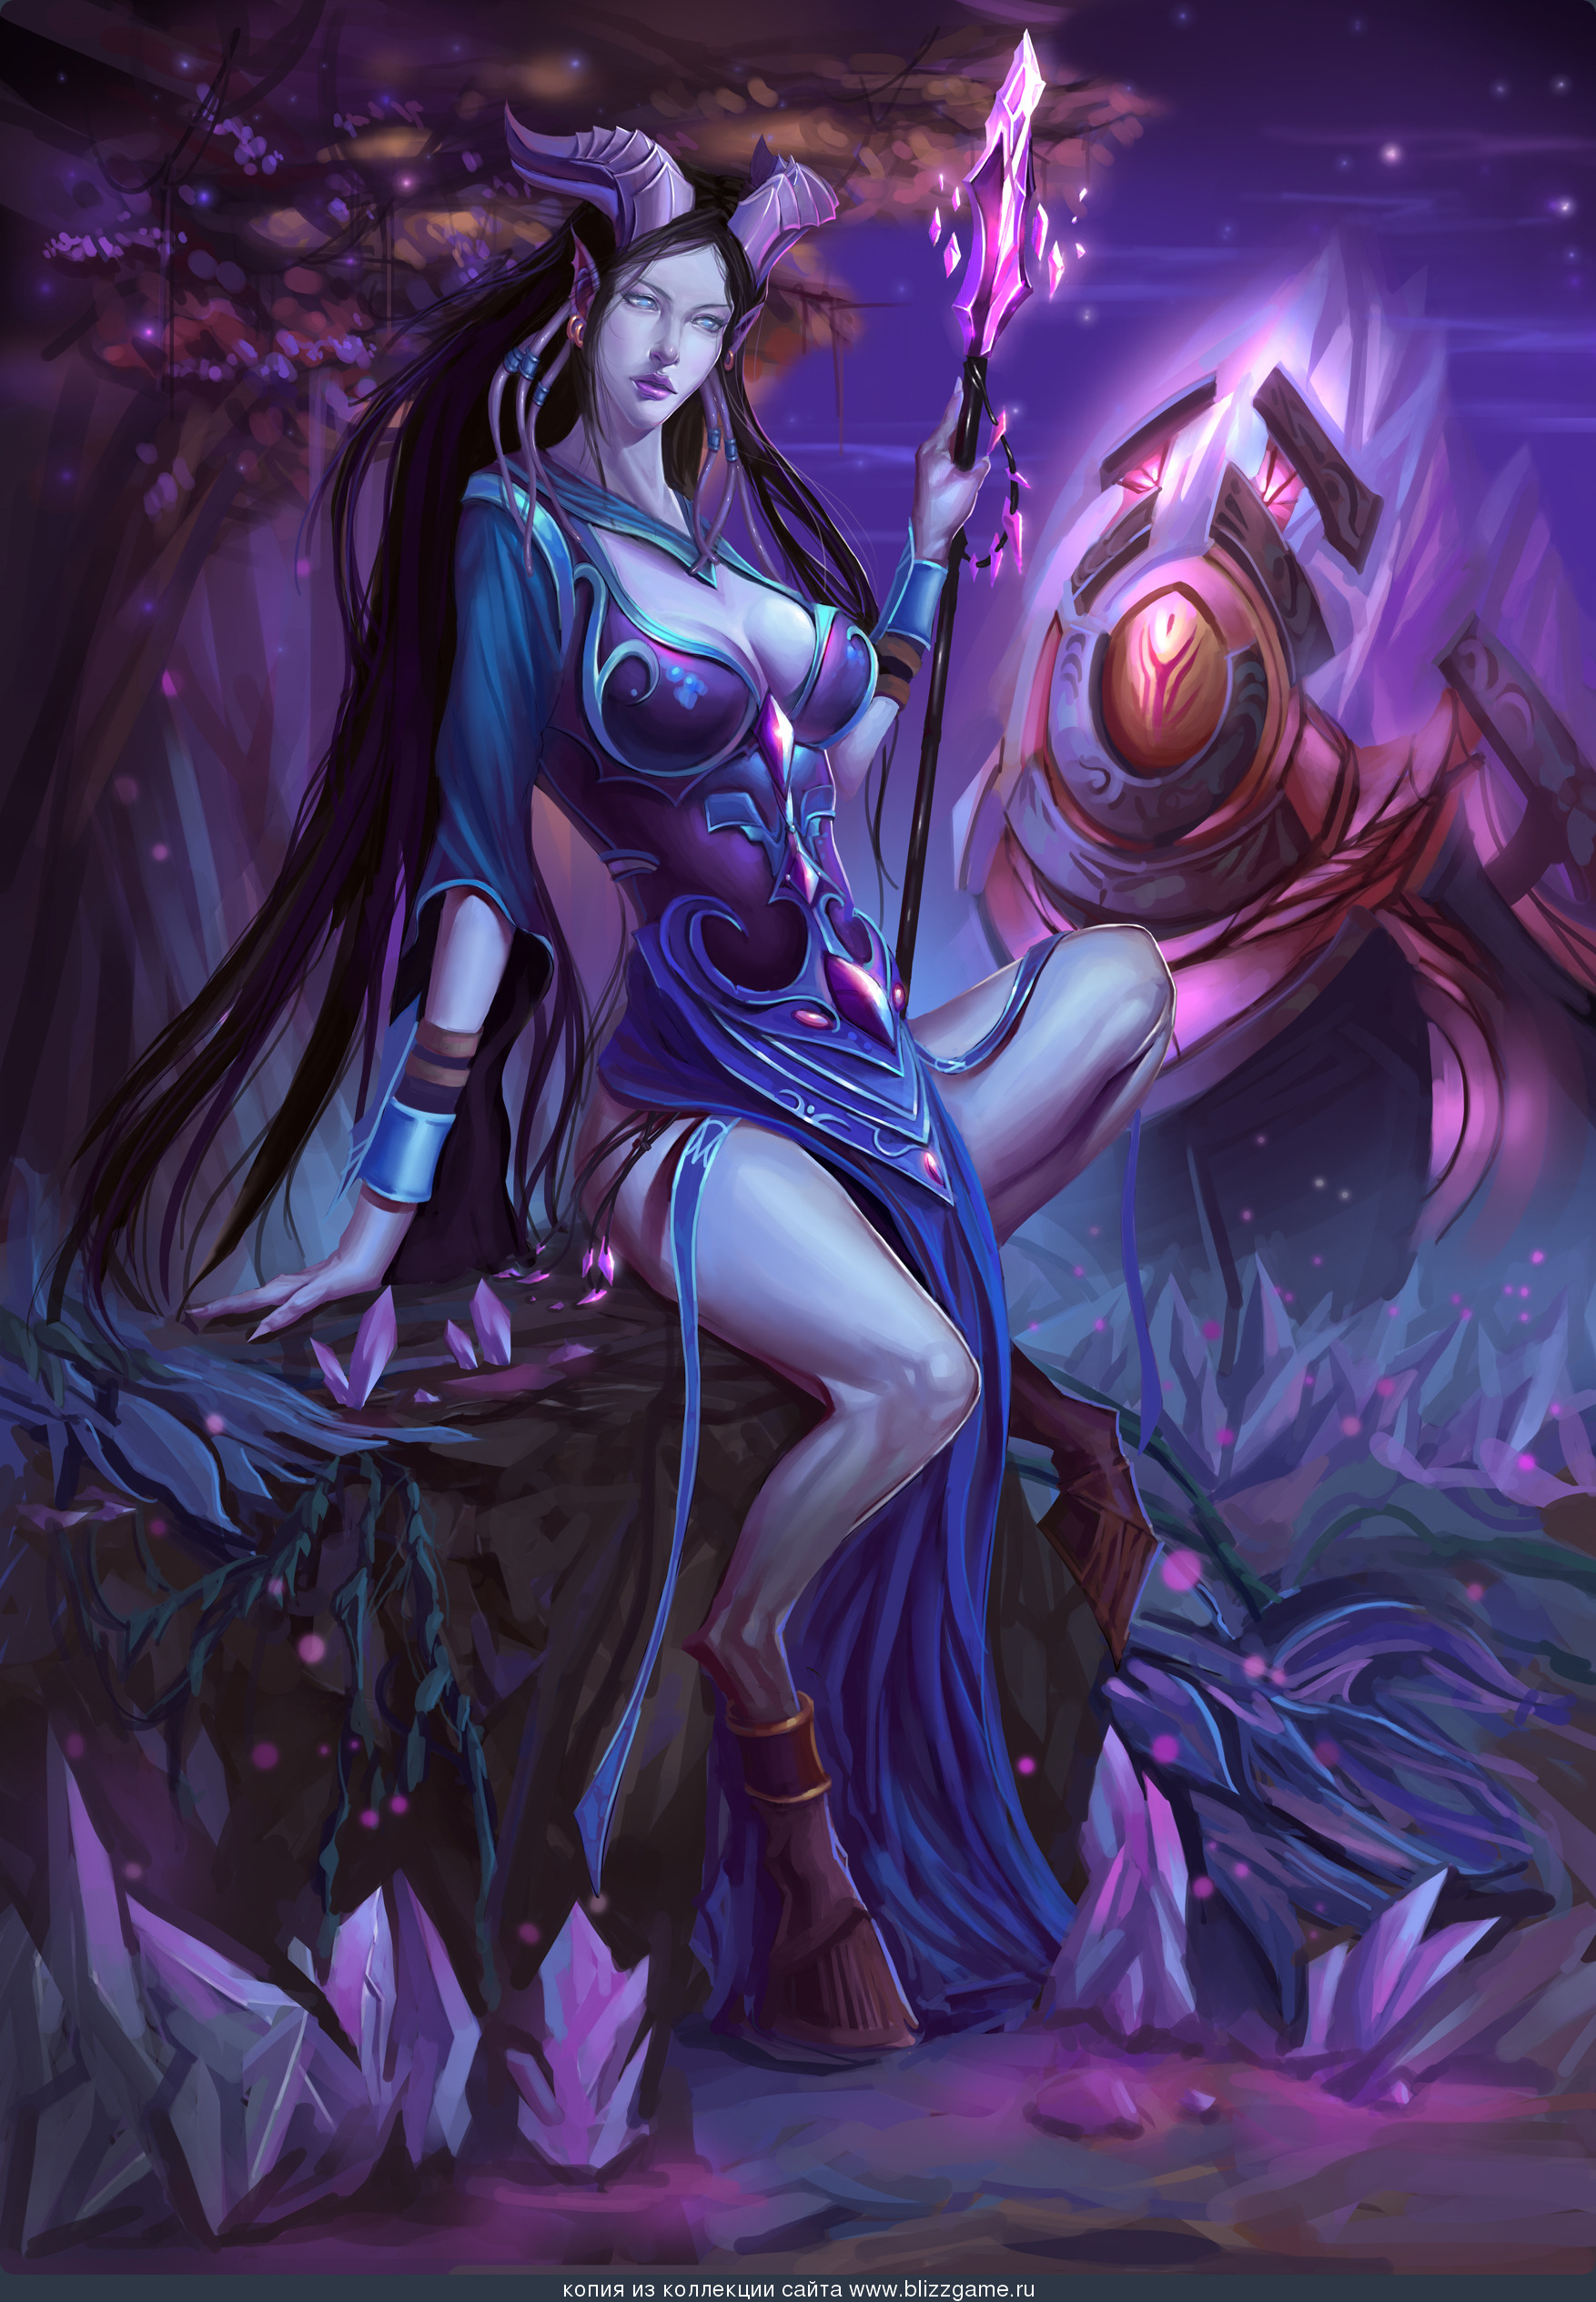 Draenei humain sex sexual toons